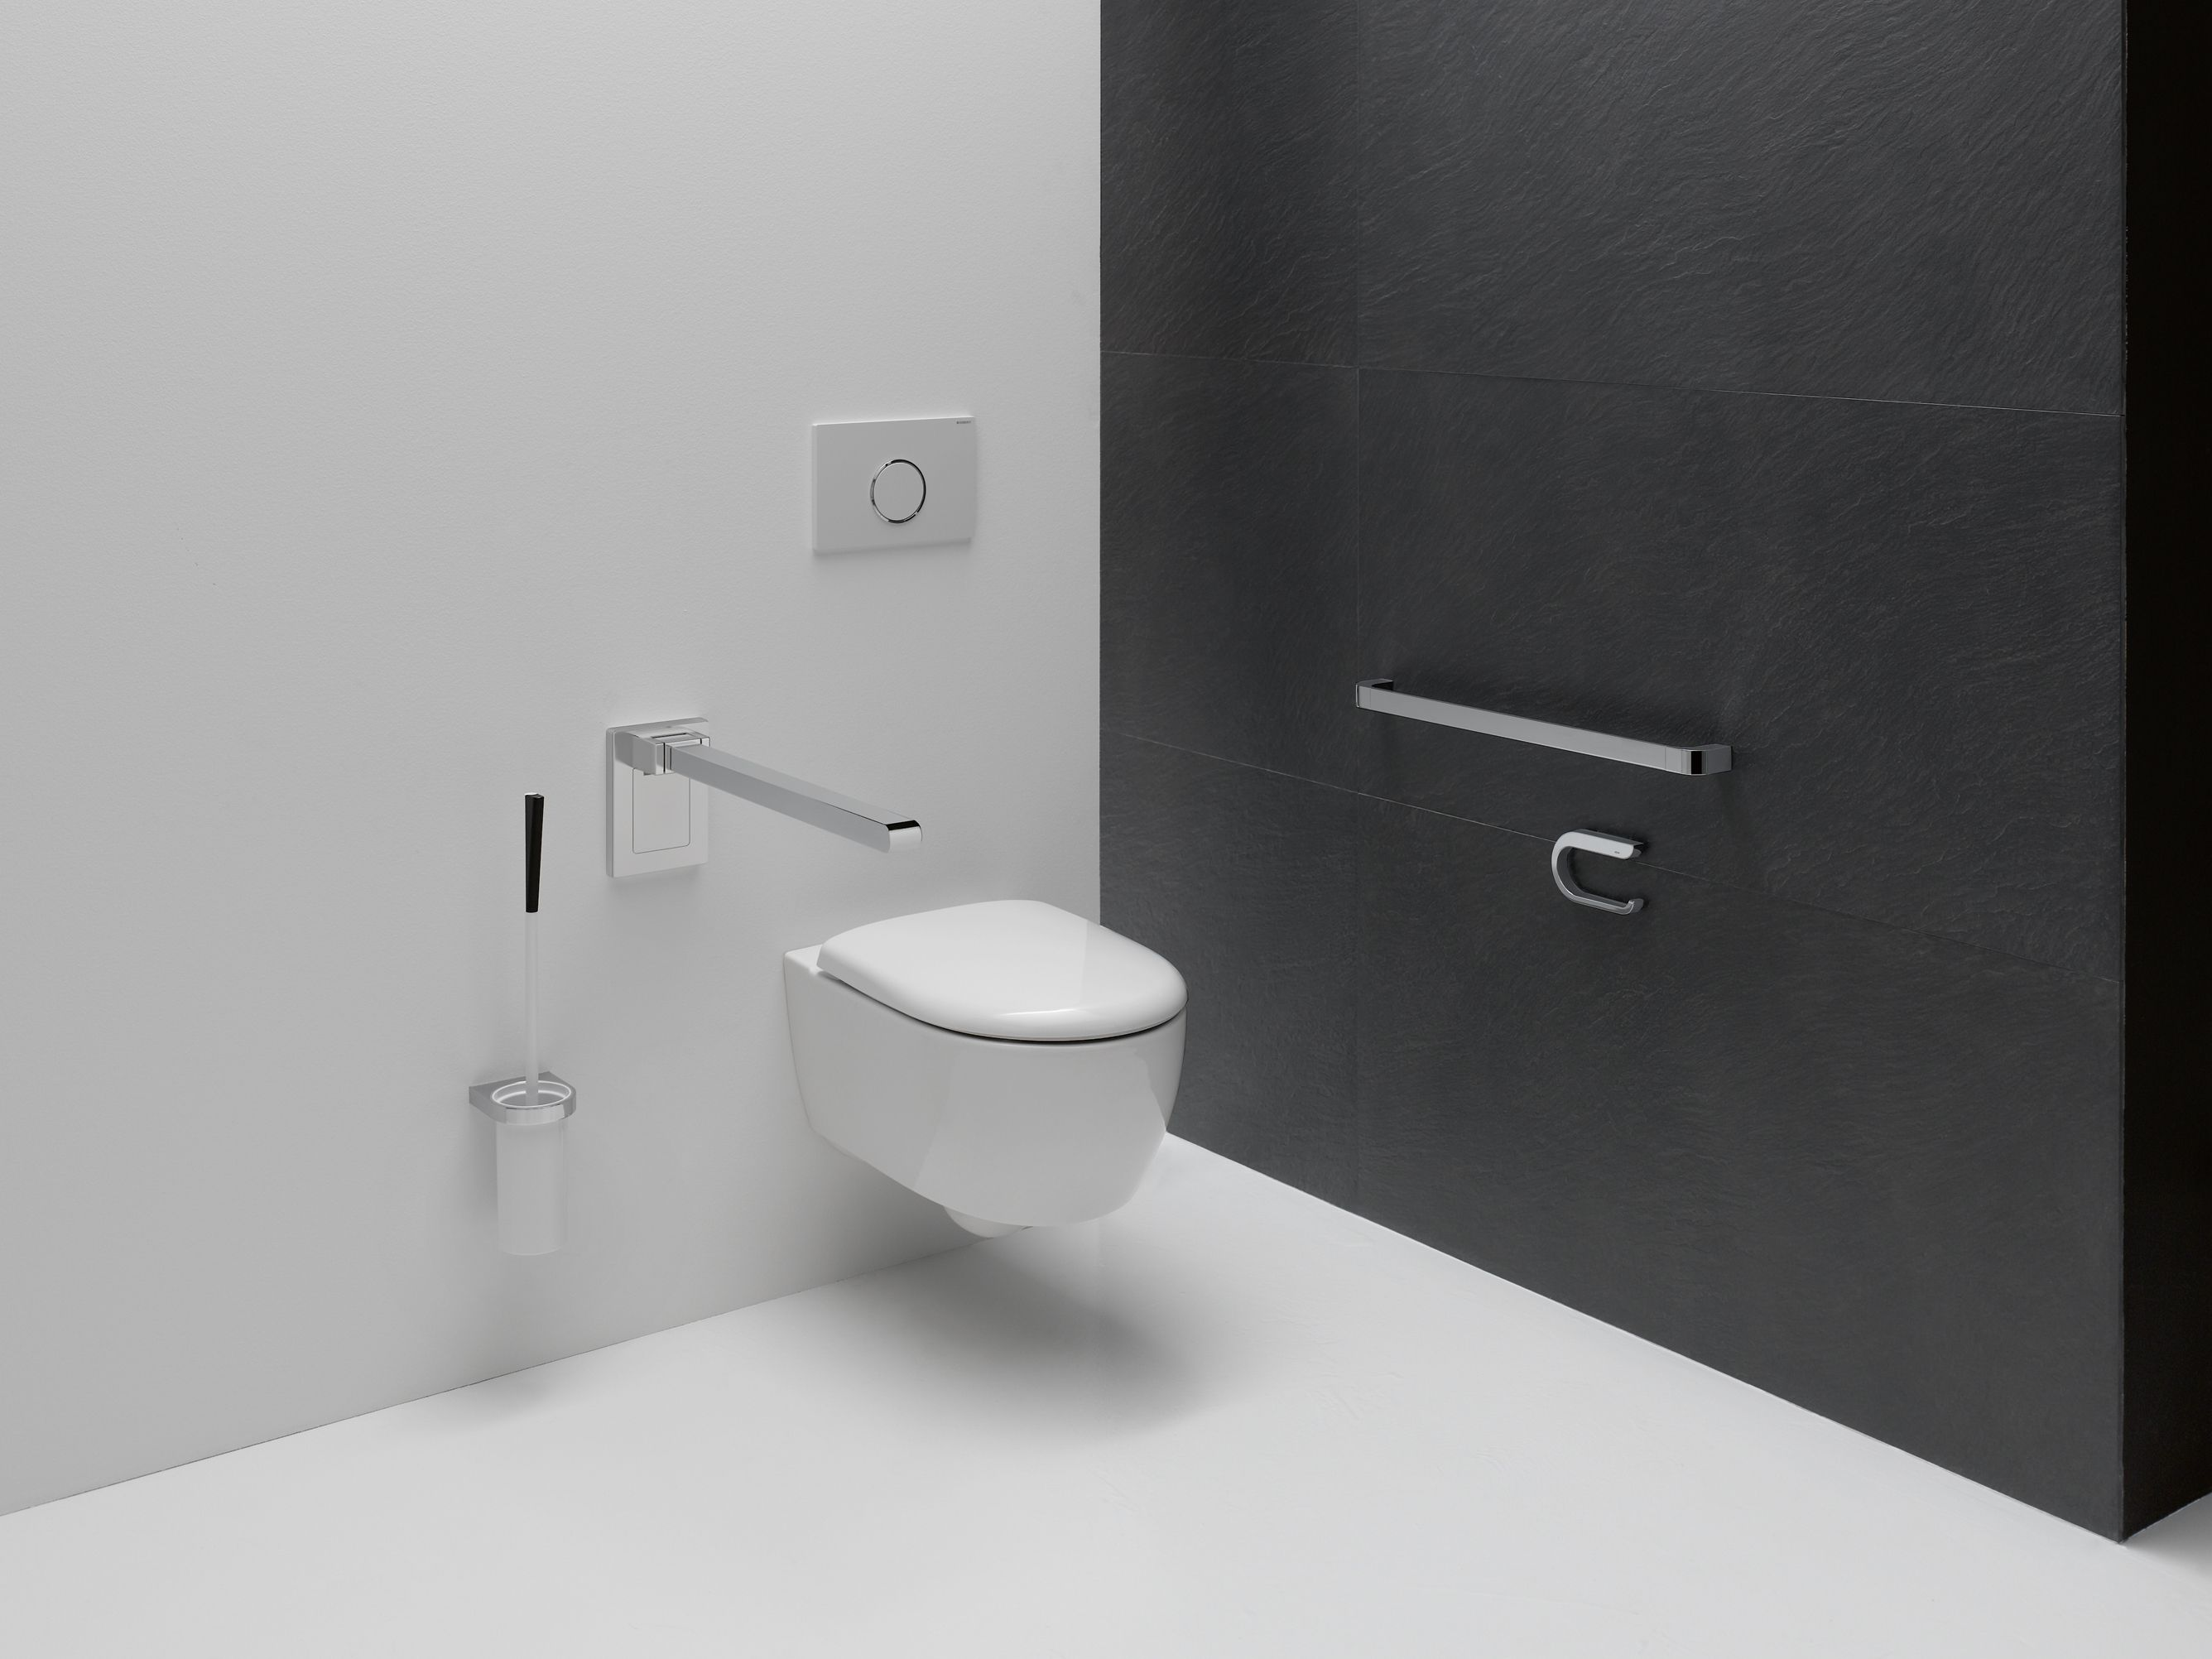 luxury disabled bathrooms drummoyne ideas pinterest disabled stylish disabled bathrooms showers by livinghouse